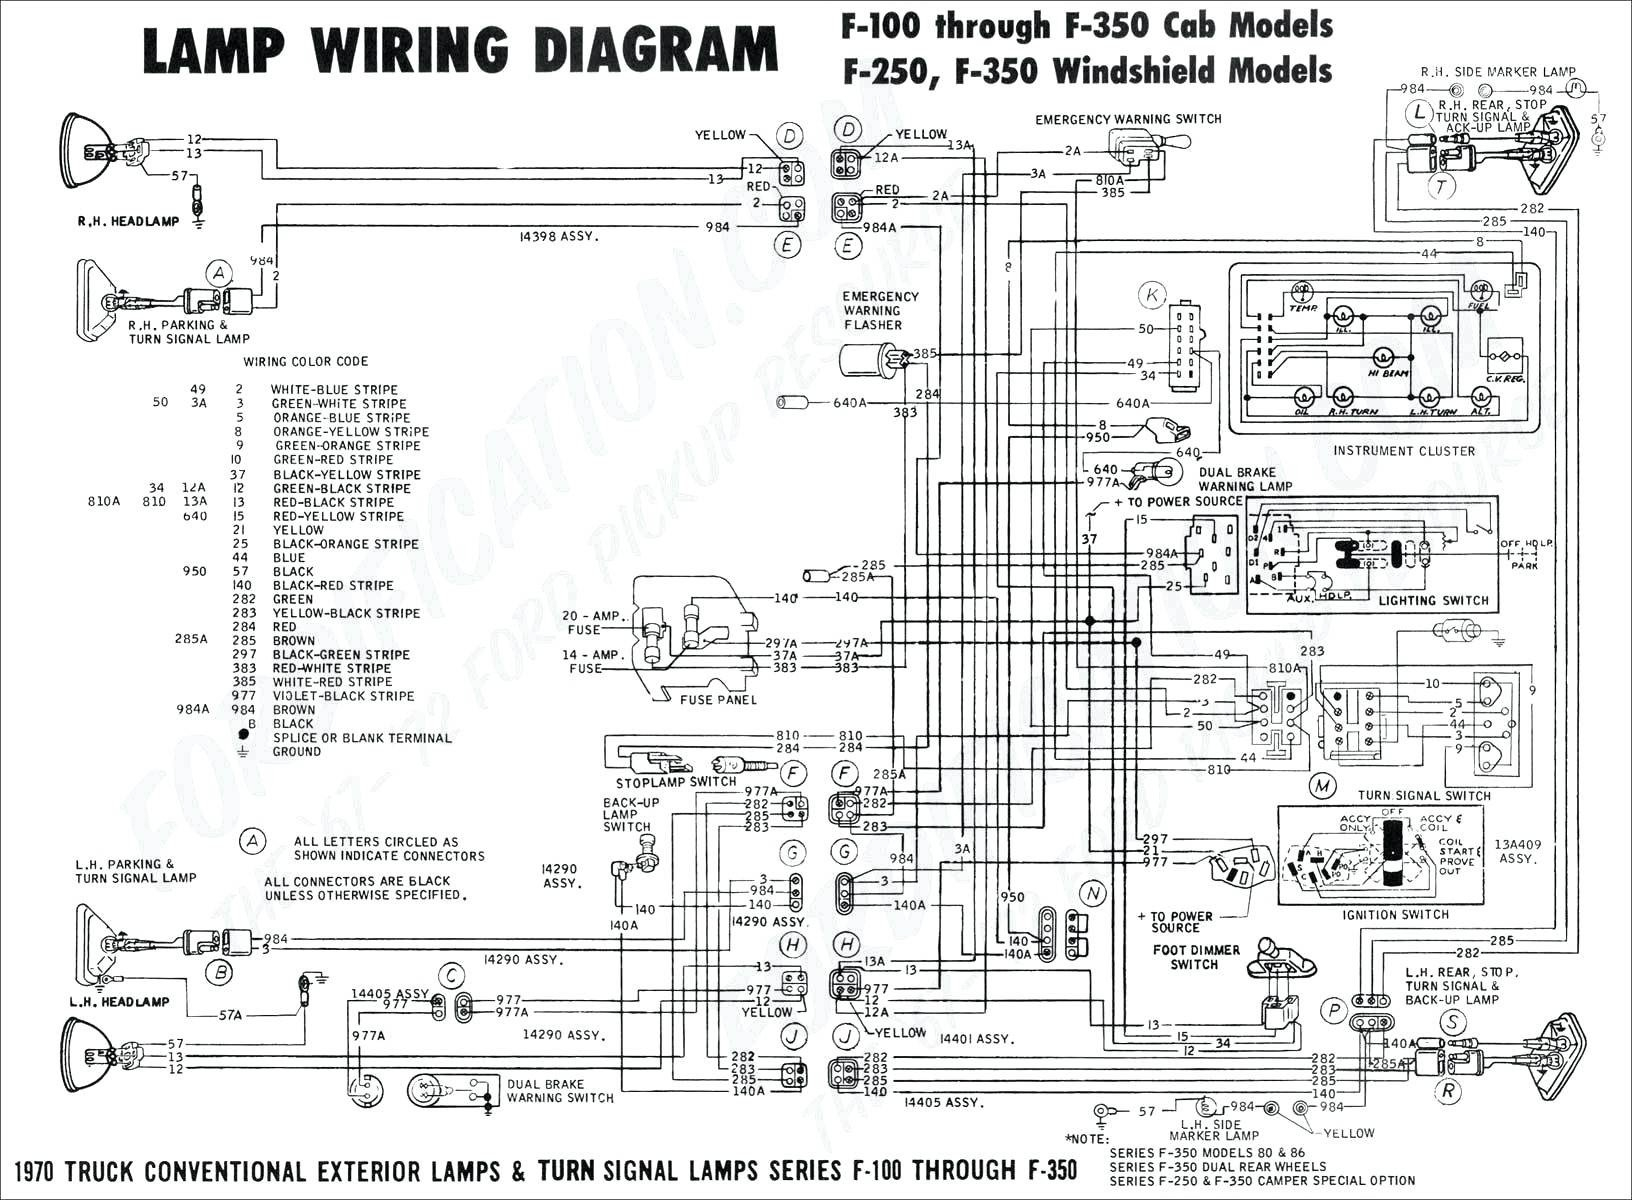 2014 dodge ram wiring diagram Download-2014 Dodge Ram Trailer Wiring Diagram Autos Post WIRE Center • 2-t